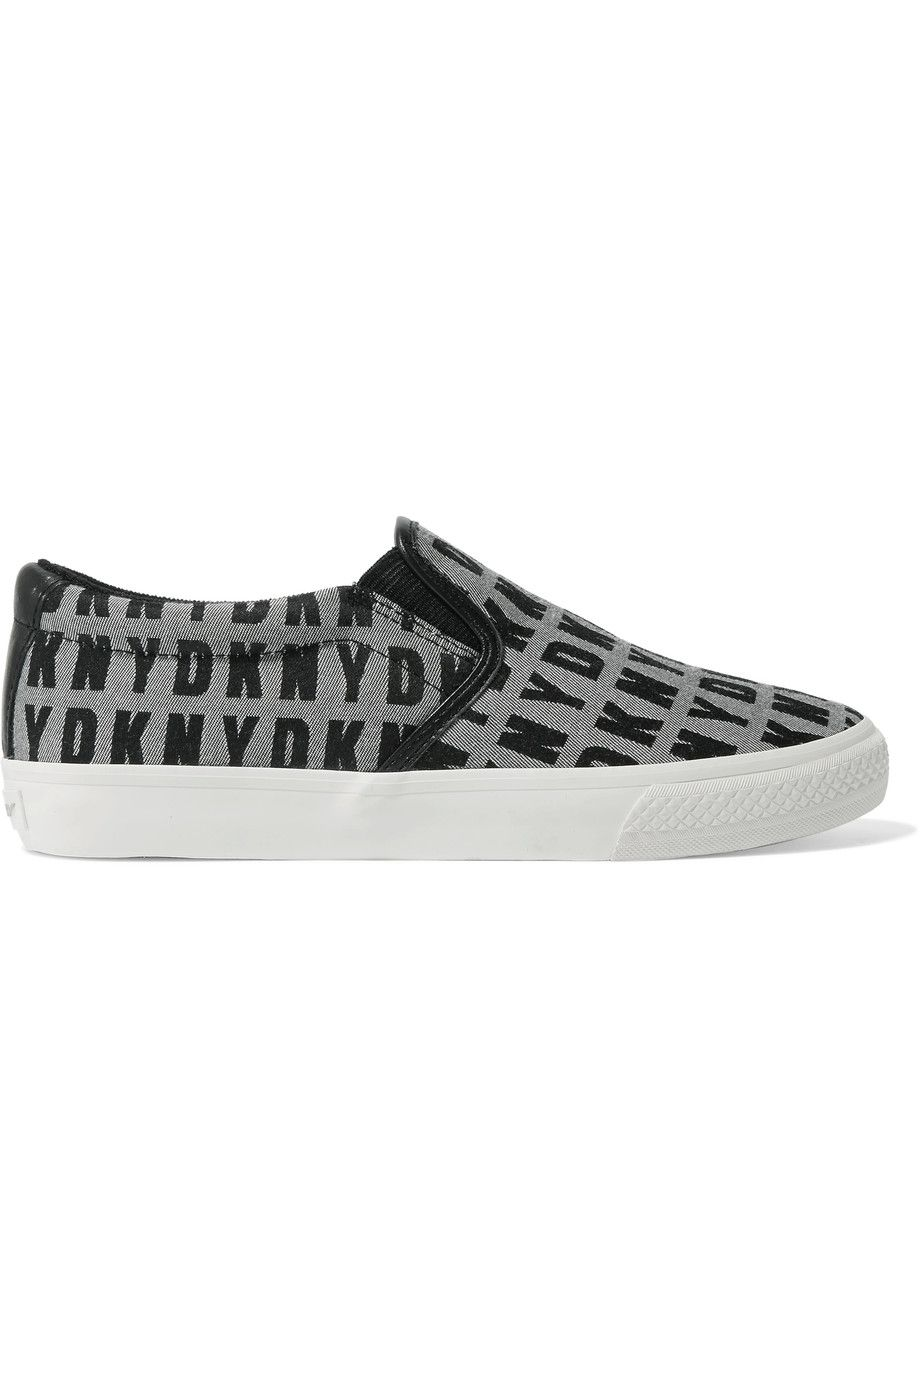 New Fashion Style Of Dkny Woman Jacquard And Leather Platform Slip-on Sneakers Black Size 6 DKNY Hot Sale Cheap Online Outlet Top Quality DPLhf